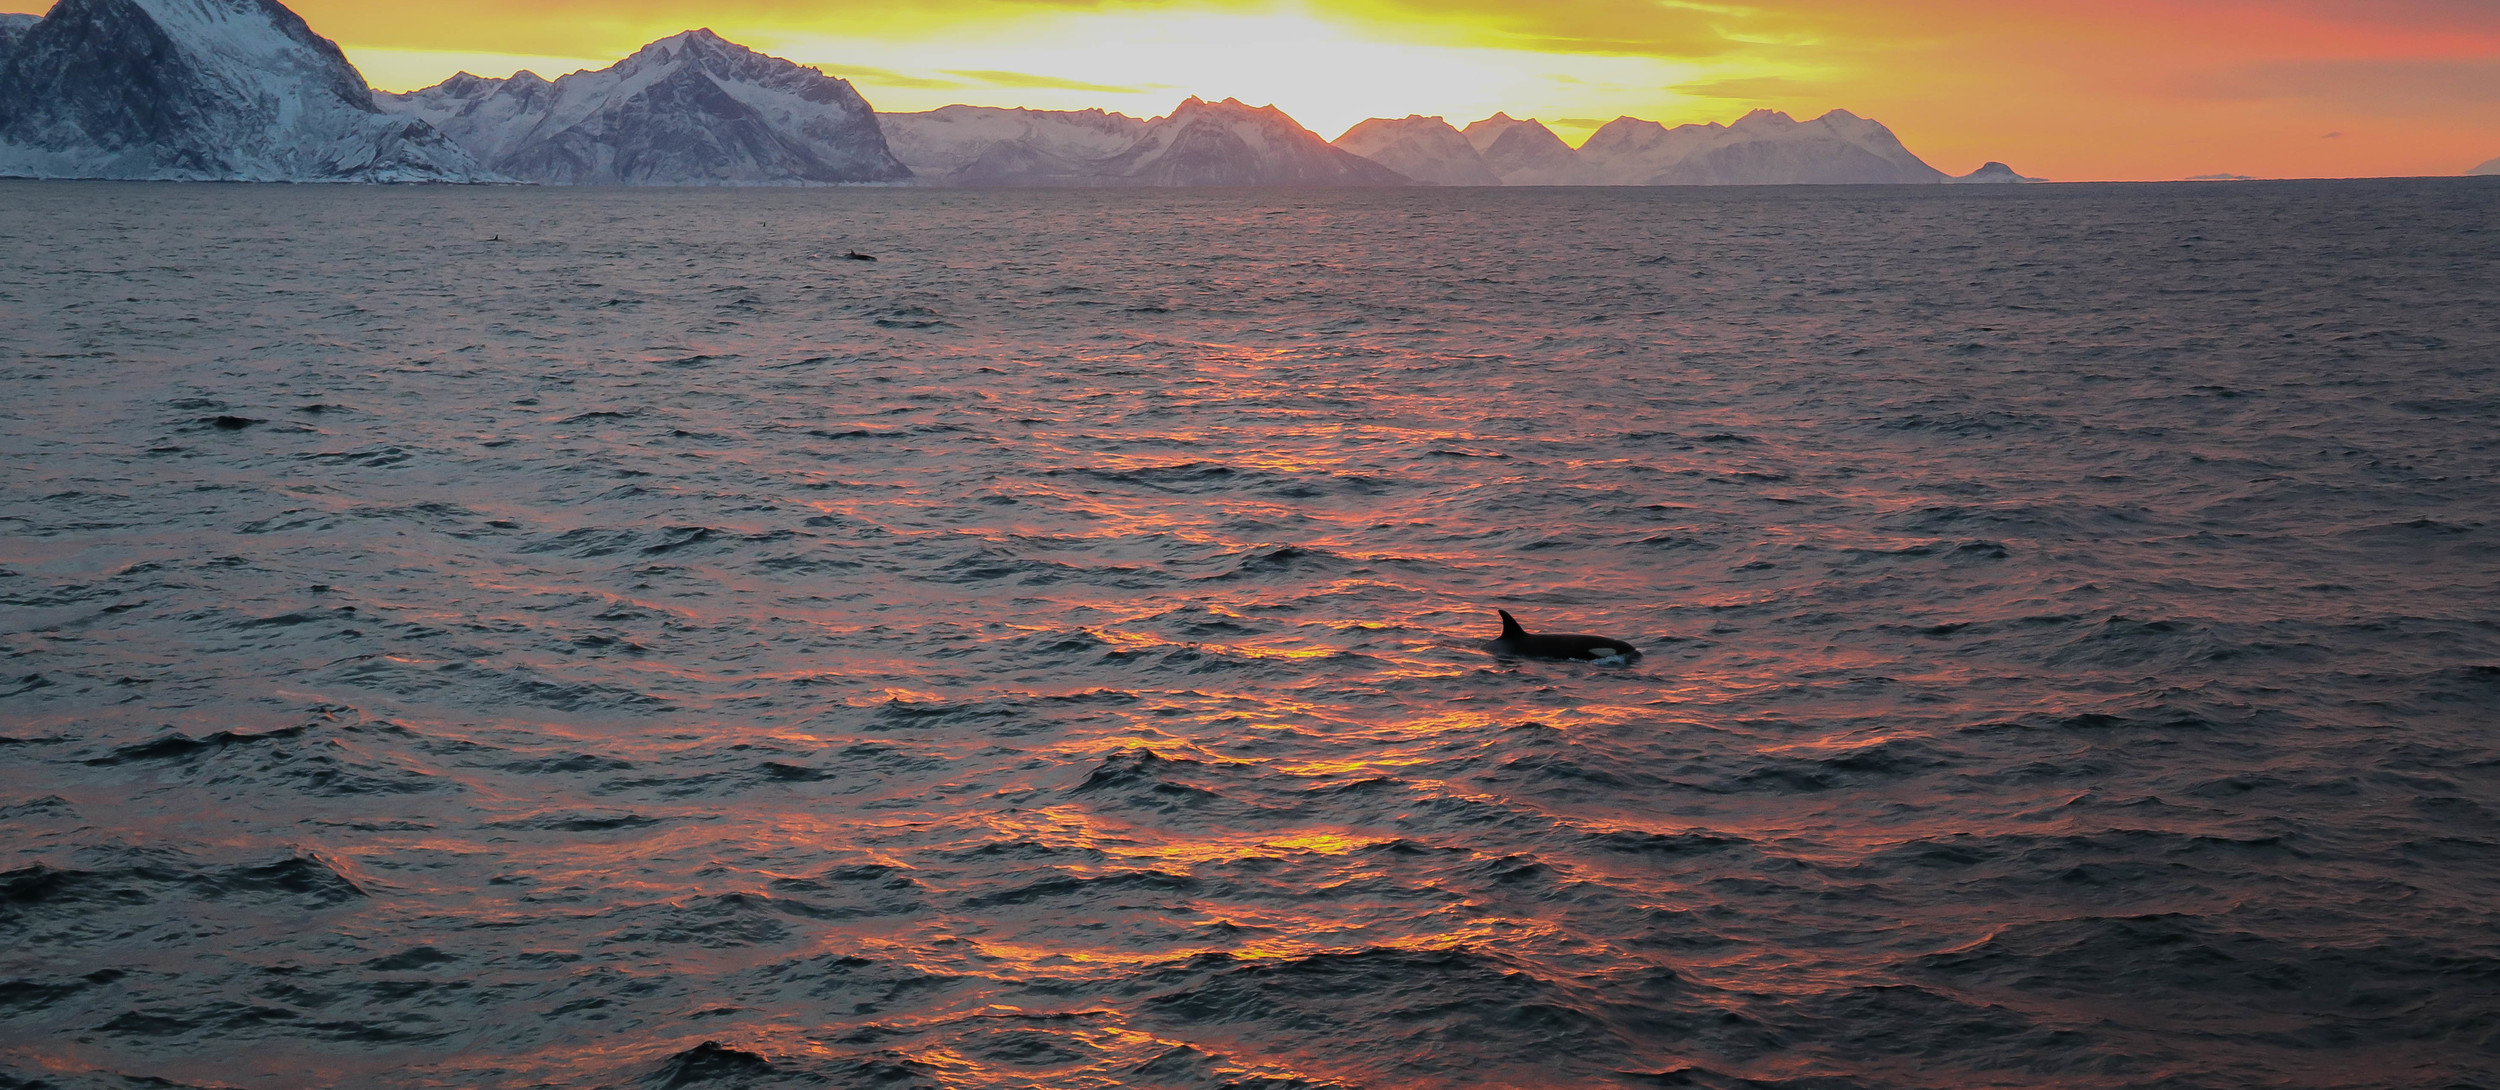 Orca in the Arctic waters of Norway.